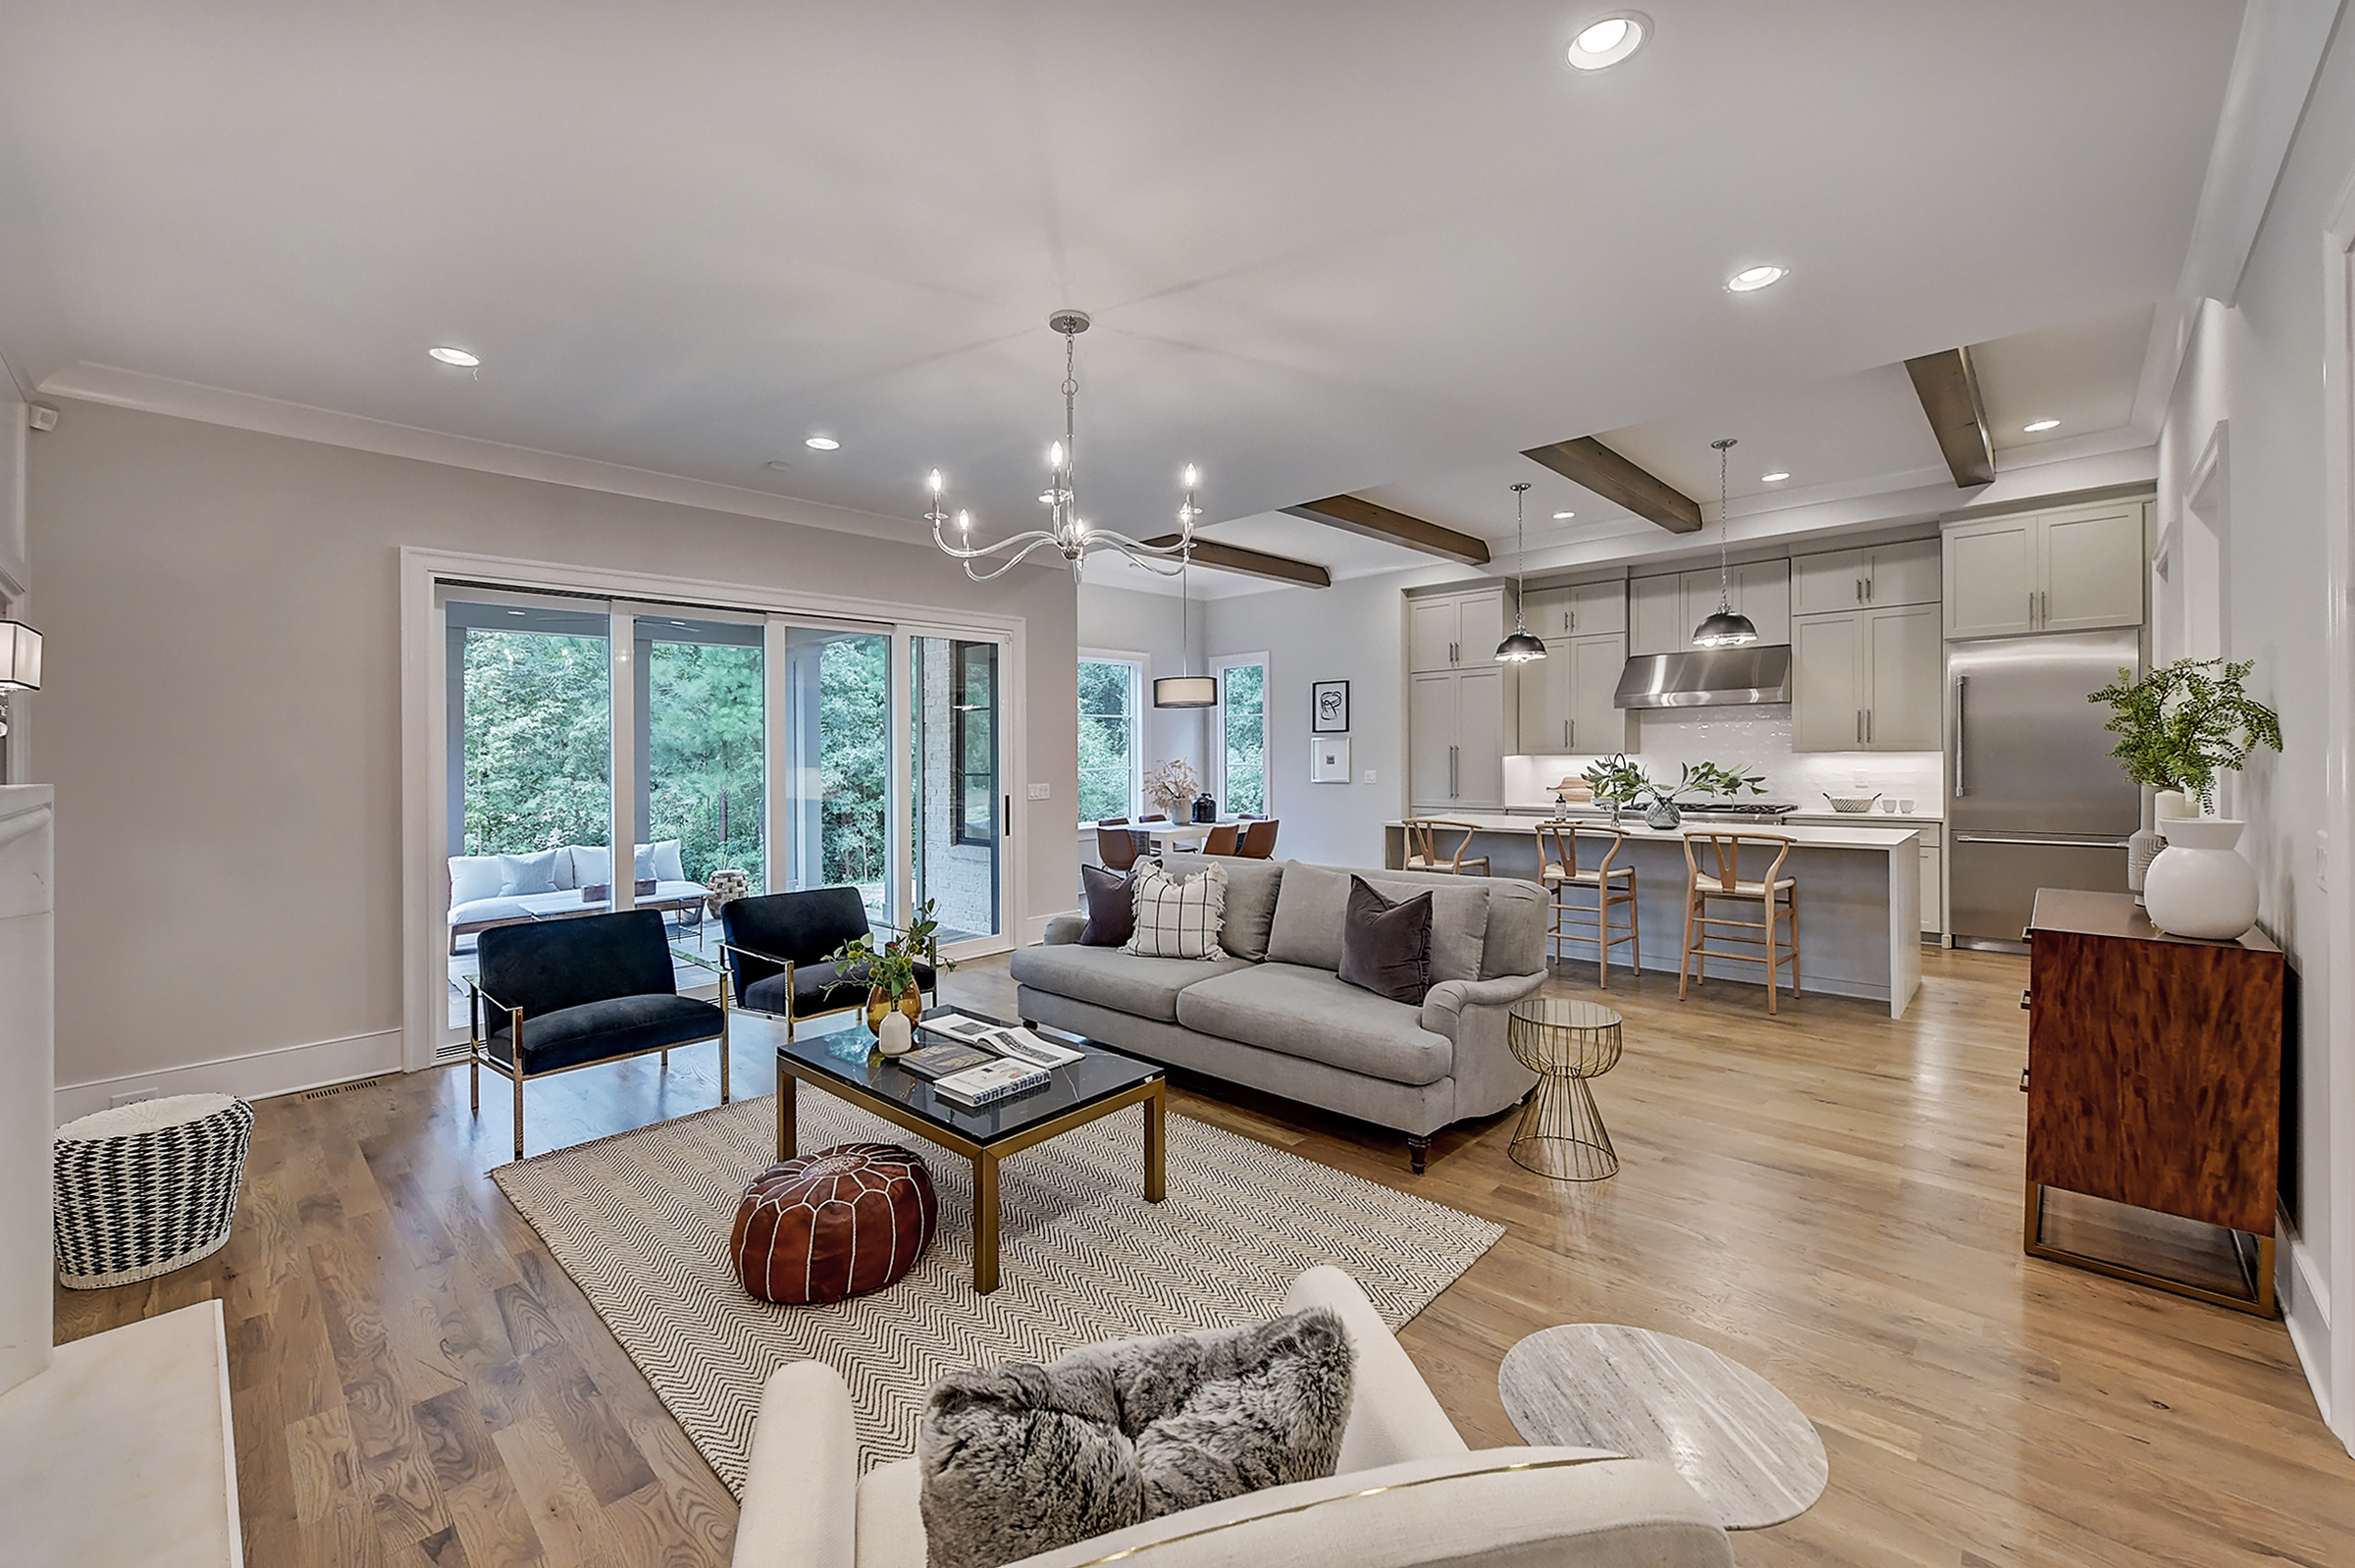 10 Features Today's Home Buyers are Looking For